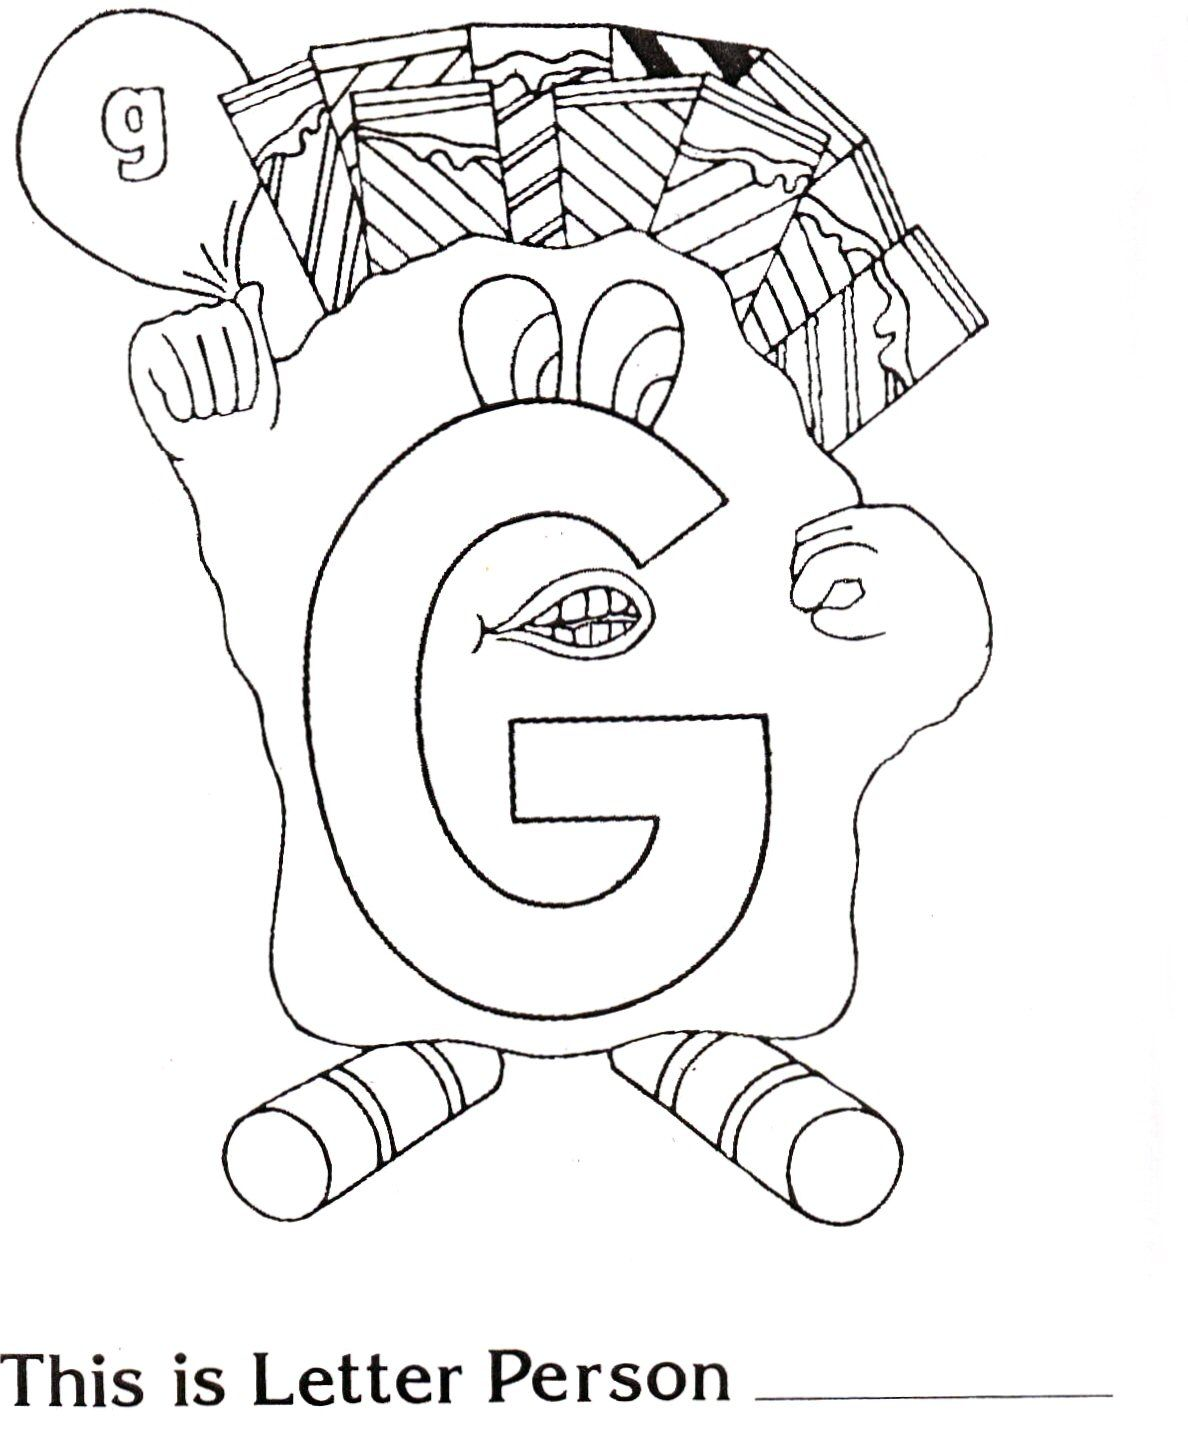 1188x1429 Brilliant Beginnings Preschool Letter Person G Coloring Page